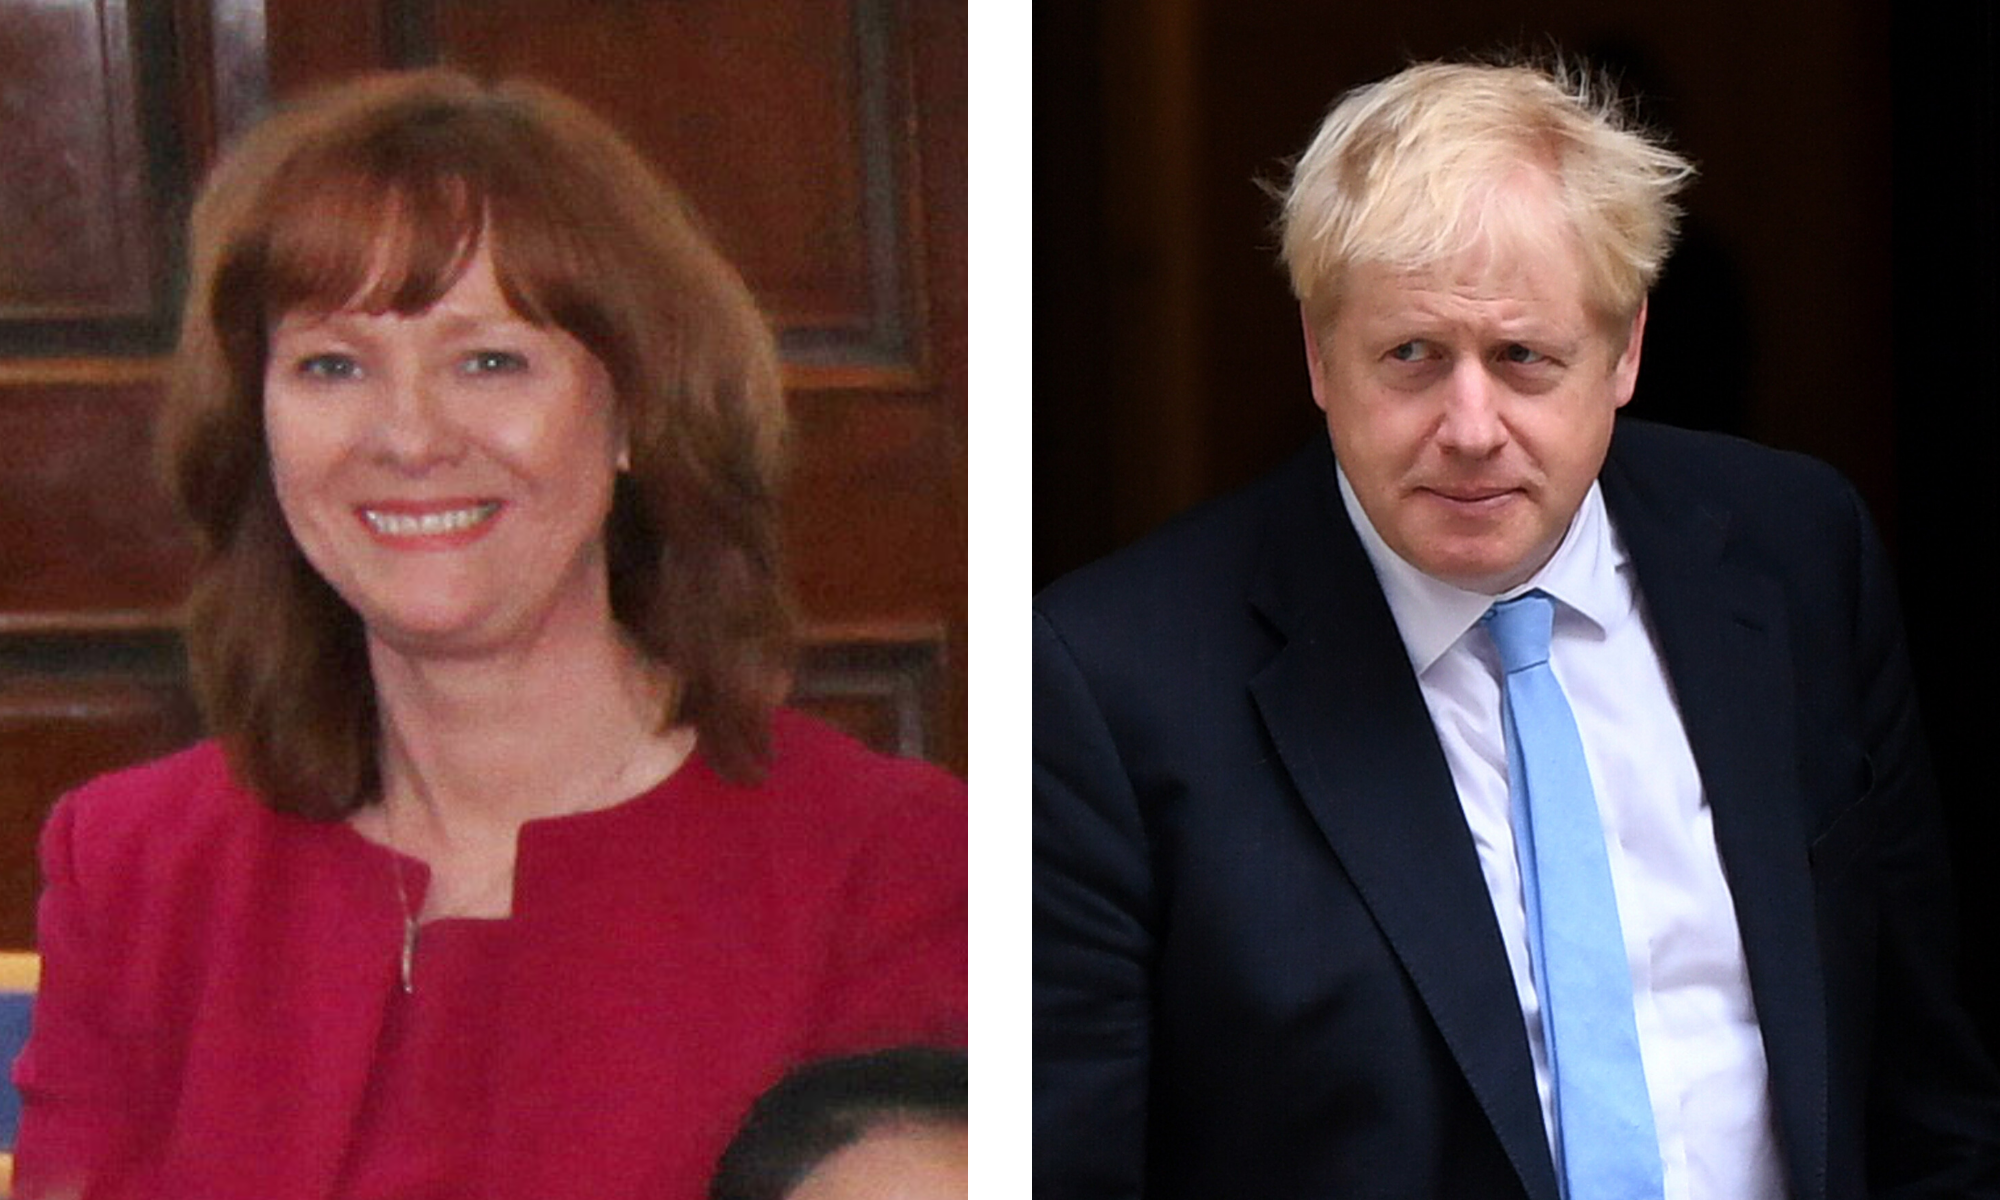 Dundee City Council officer Andrea Calder claims Boris Johnson's plans for a post-Brexit jobs cap could benefit local workers.